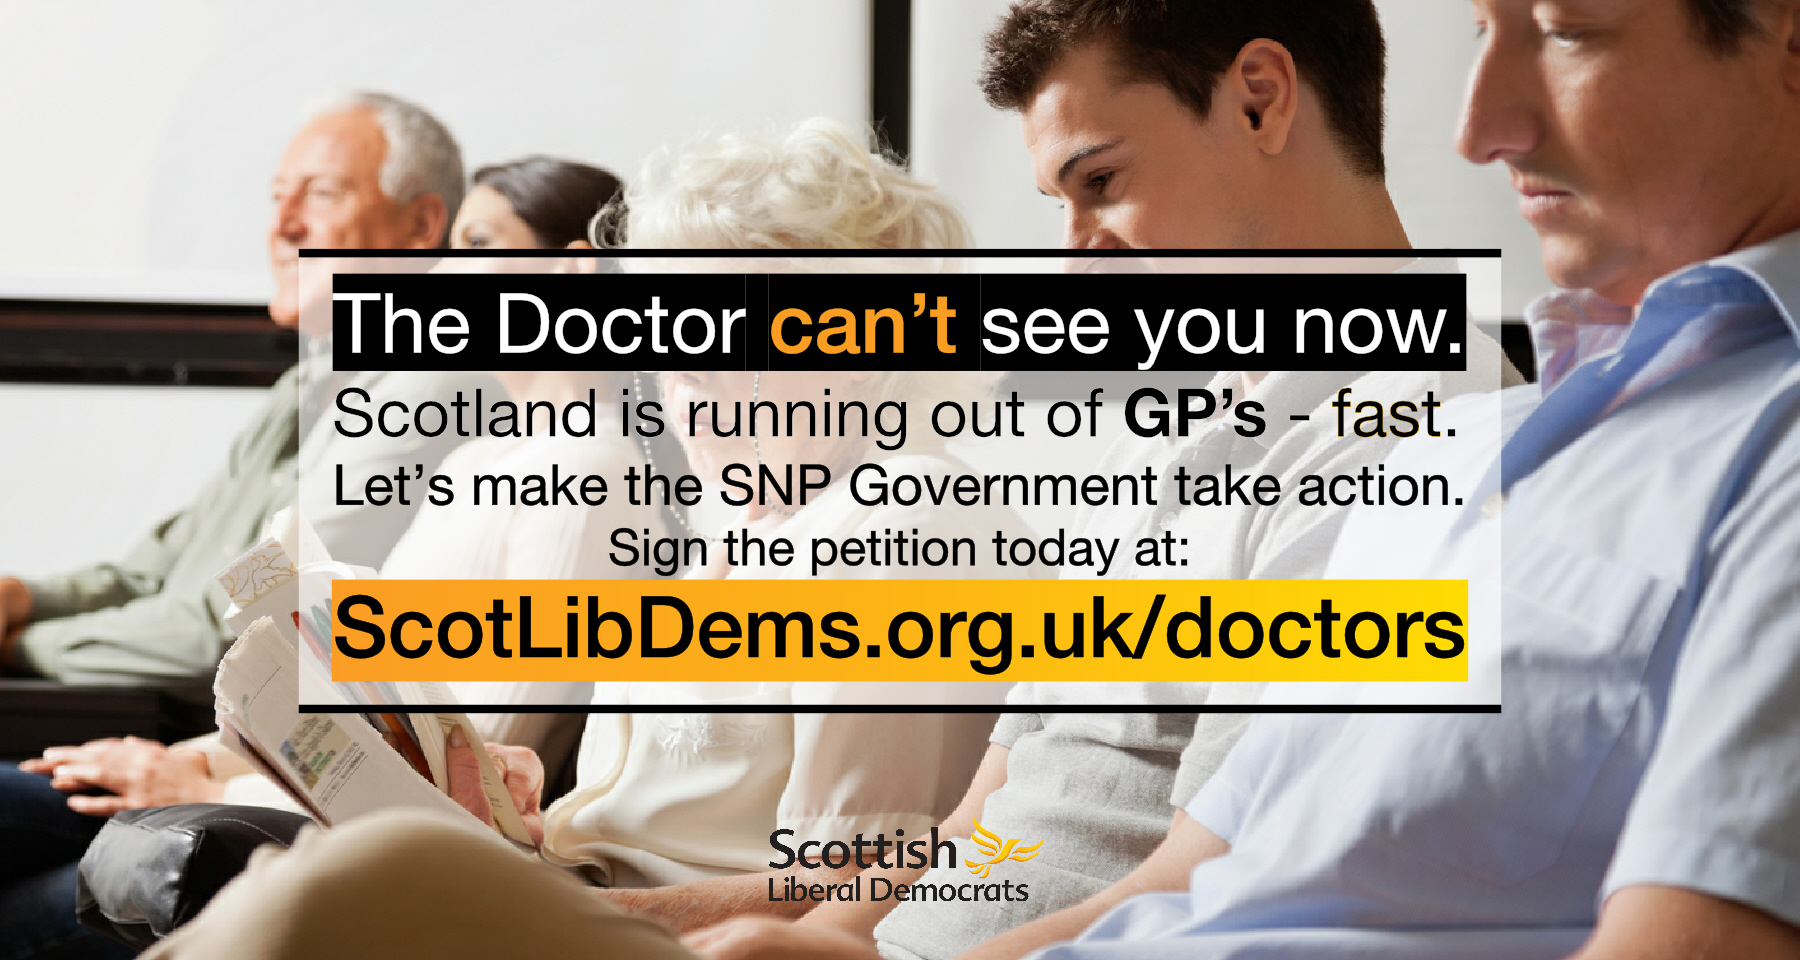 Scotland is running out of GP's